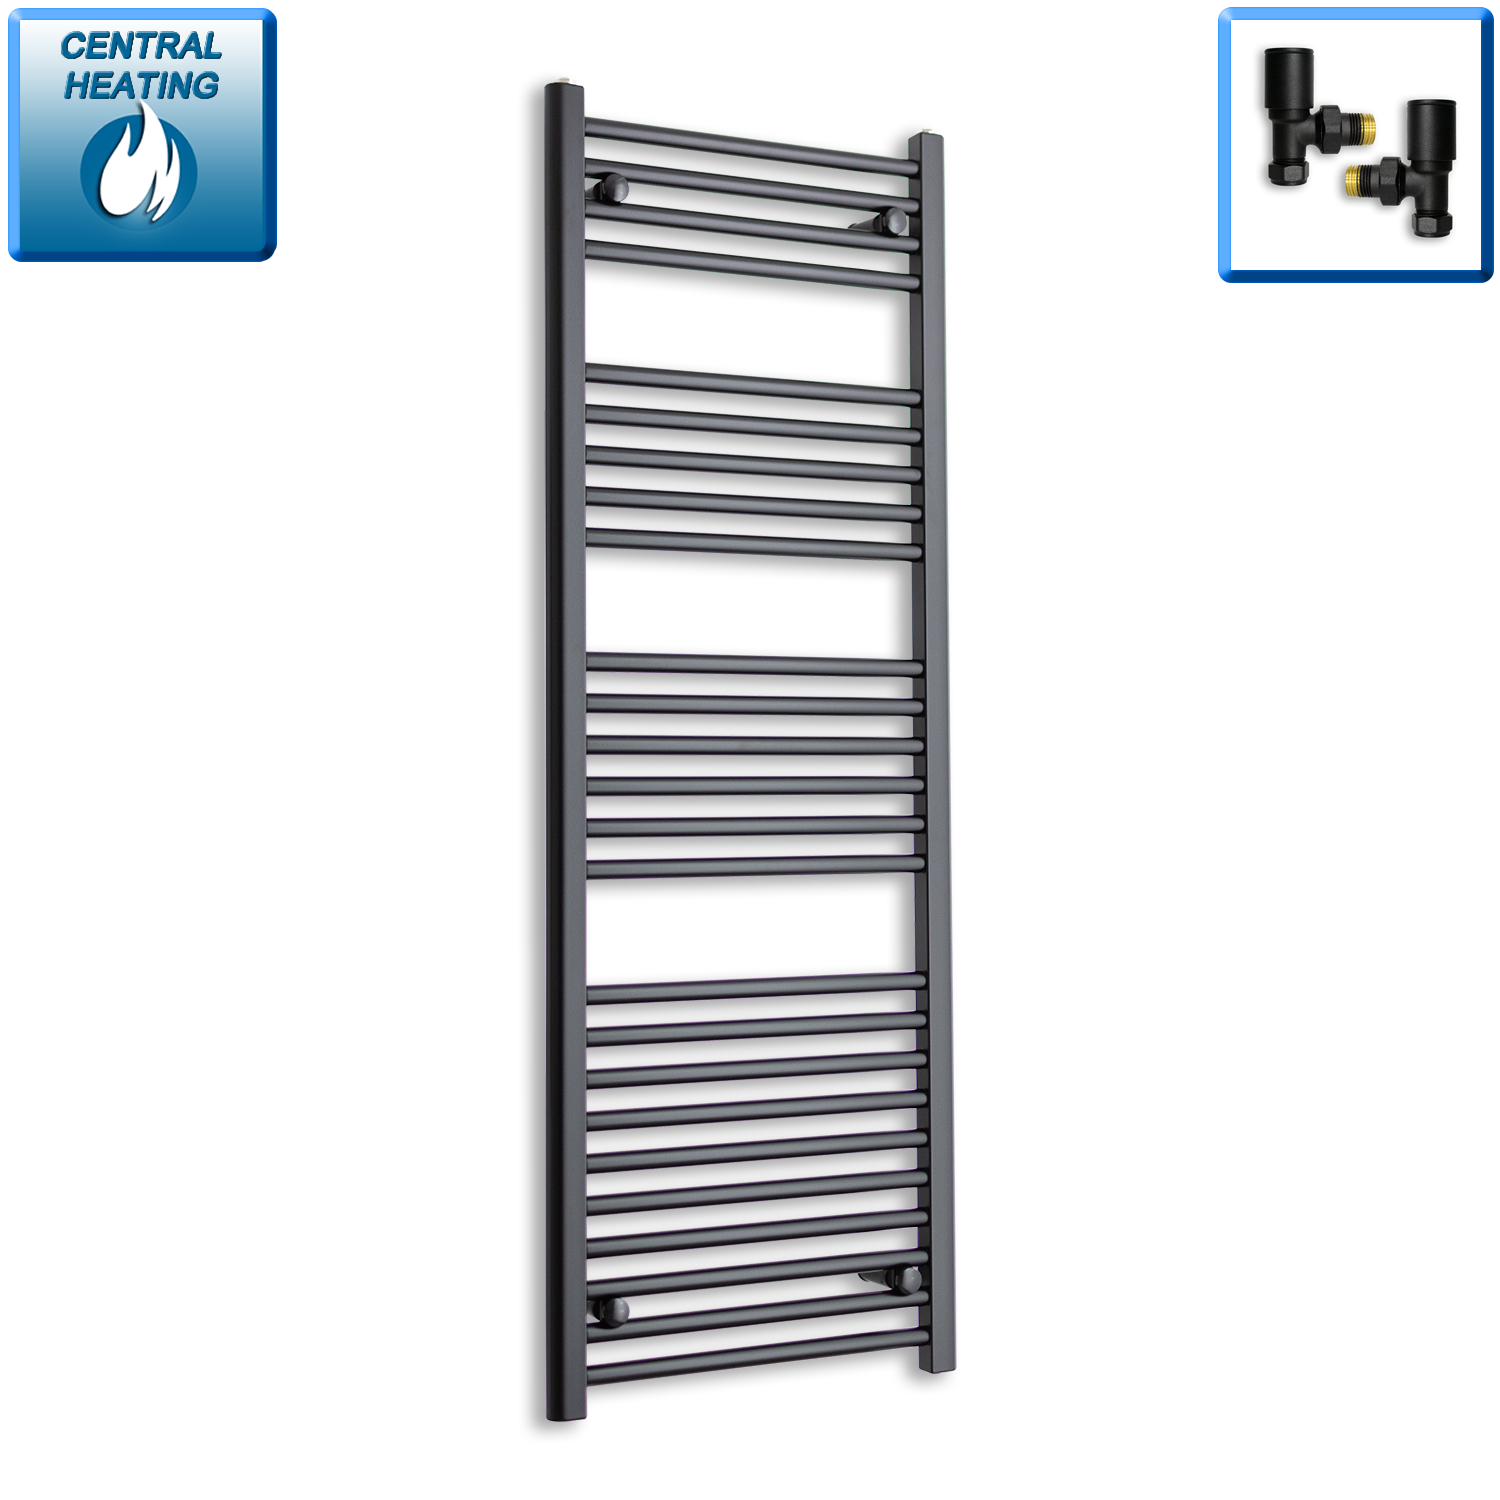 450mm Wide 1400mm High Flat Black Heated Towel Rail Radiator,With Angled Valve